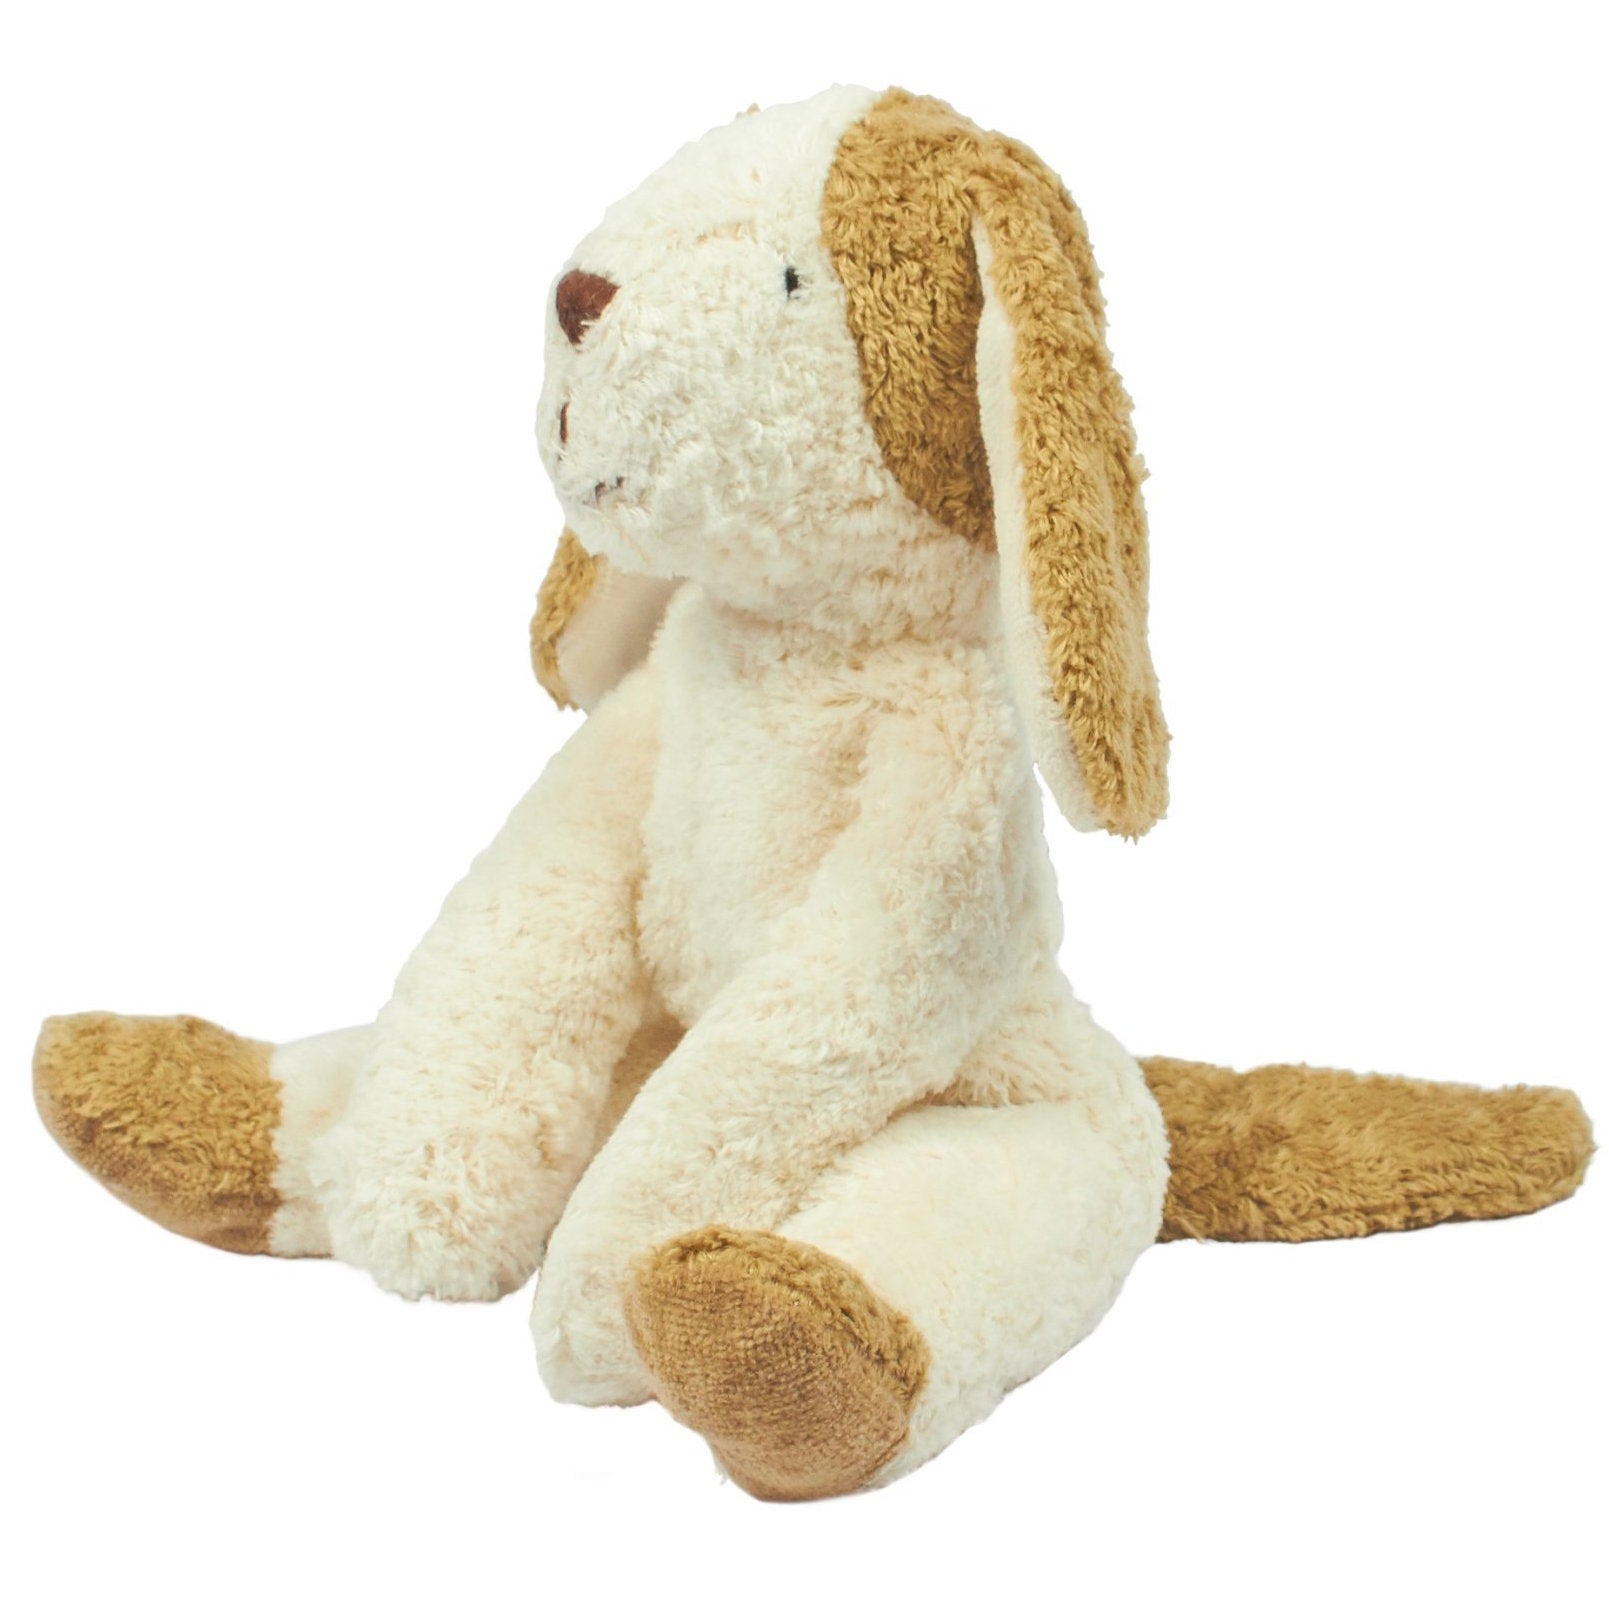 Senger Naturwelt organic cotton stuffed toy - dog in white and beige